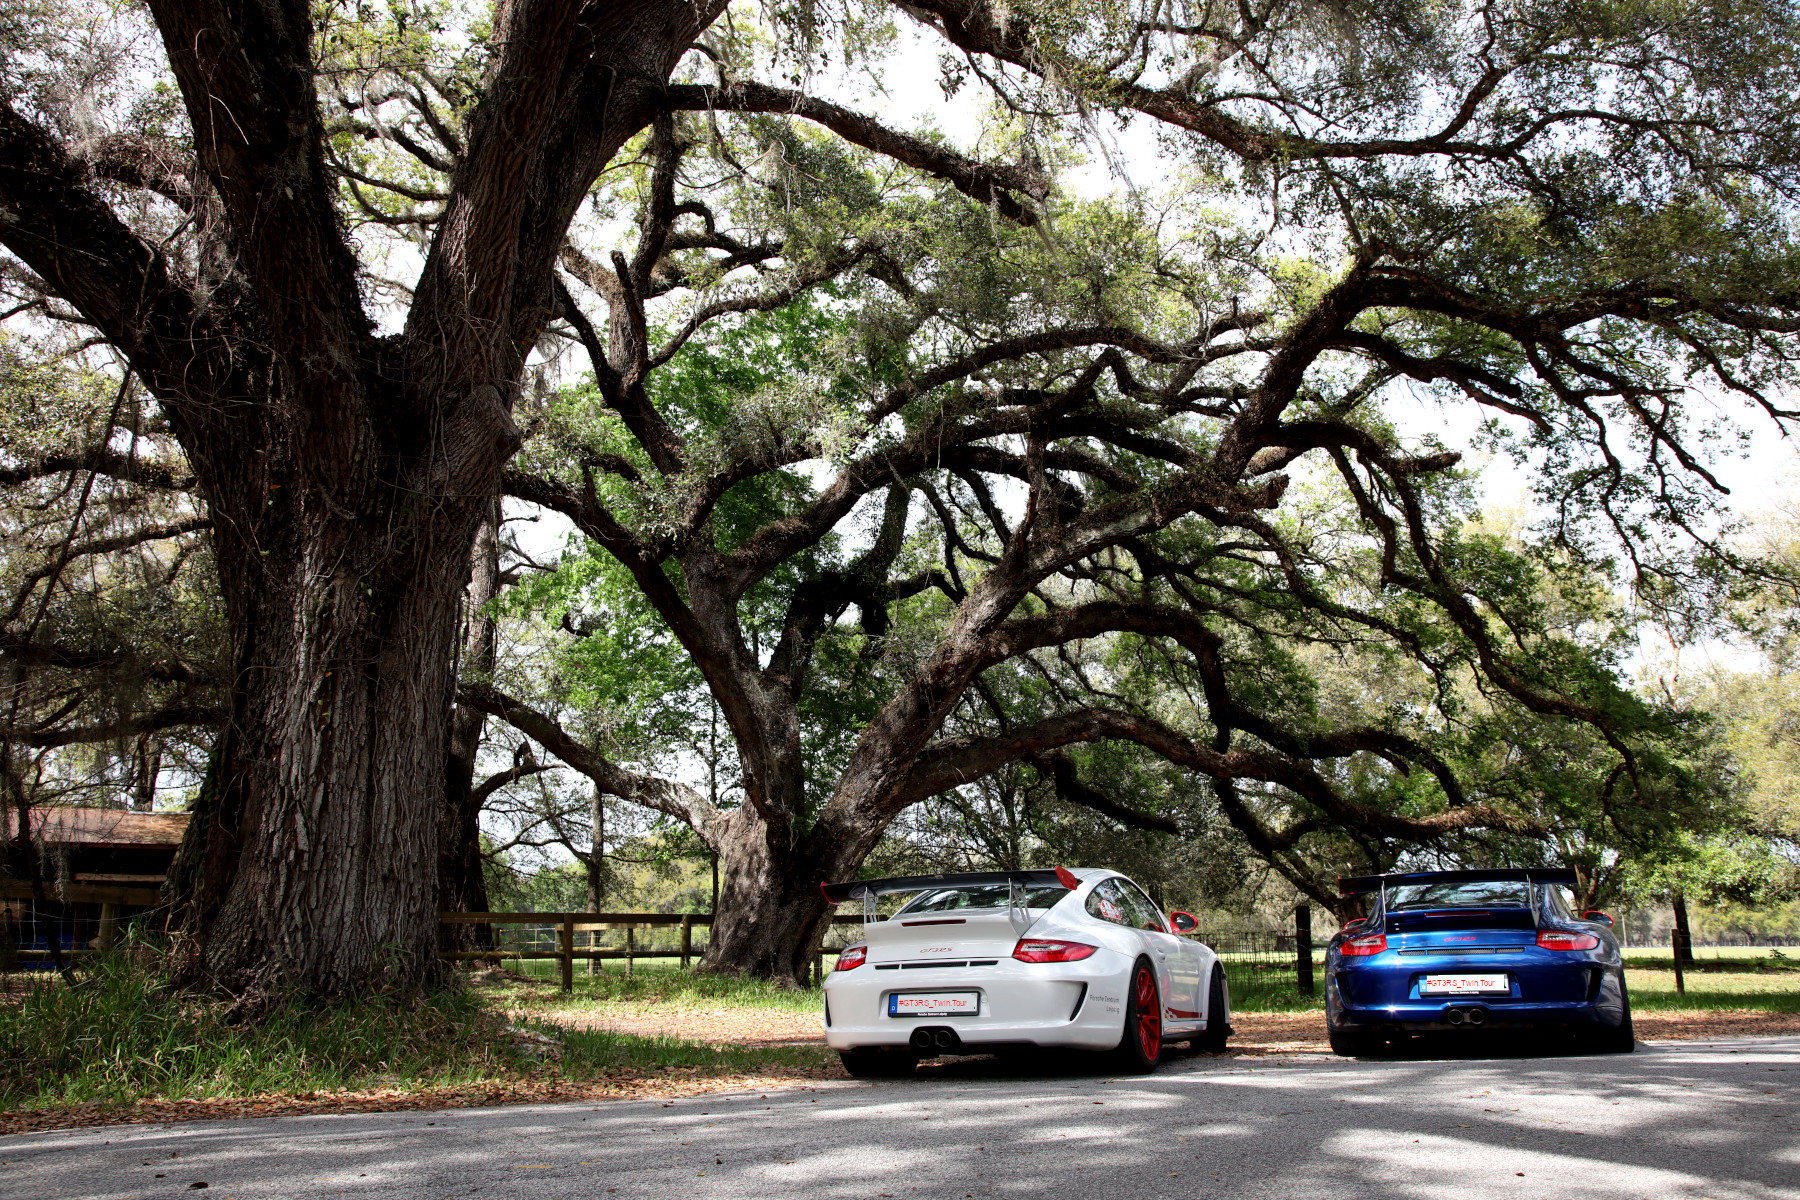 The Twins under live oaks